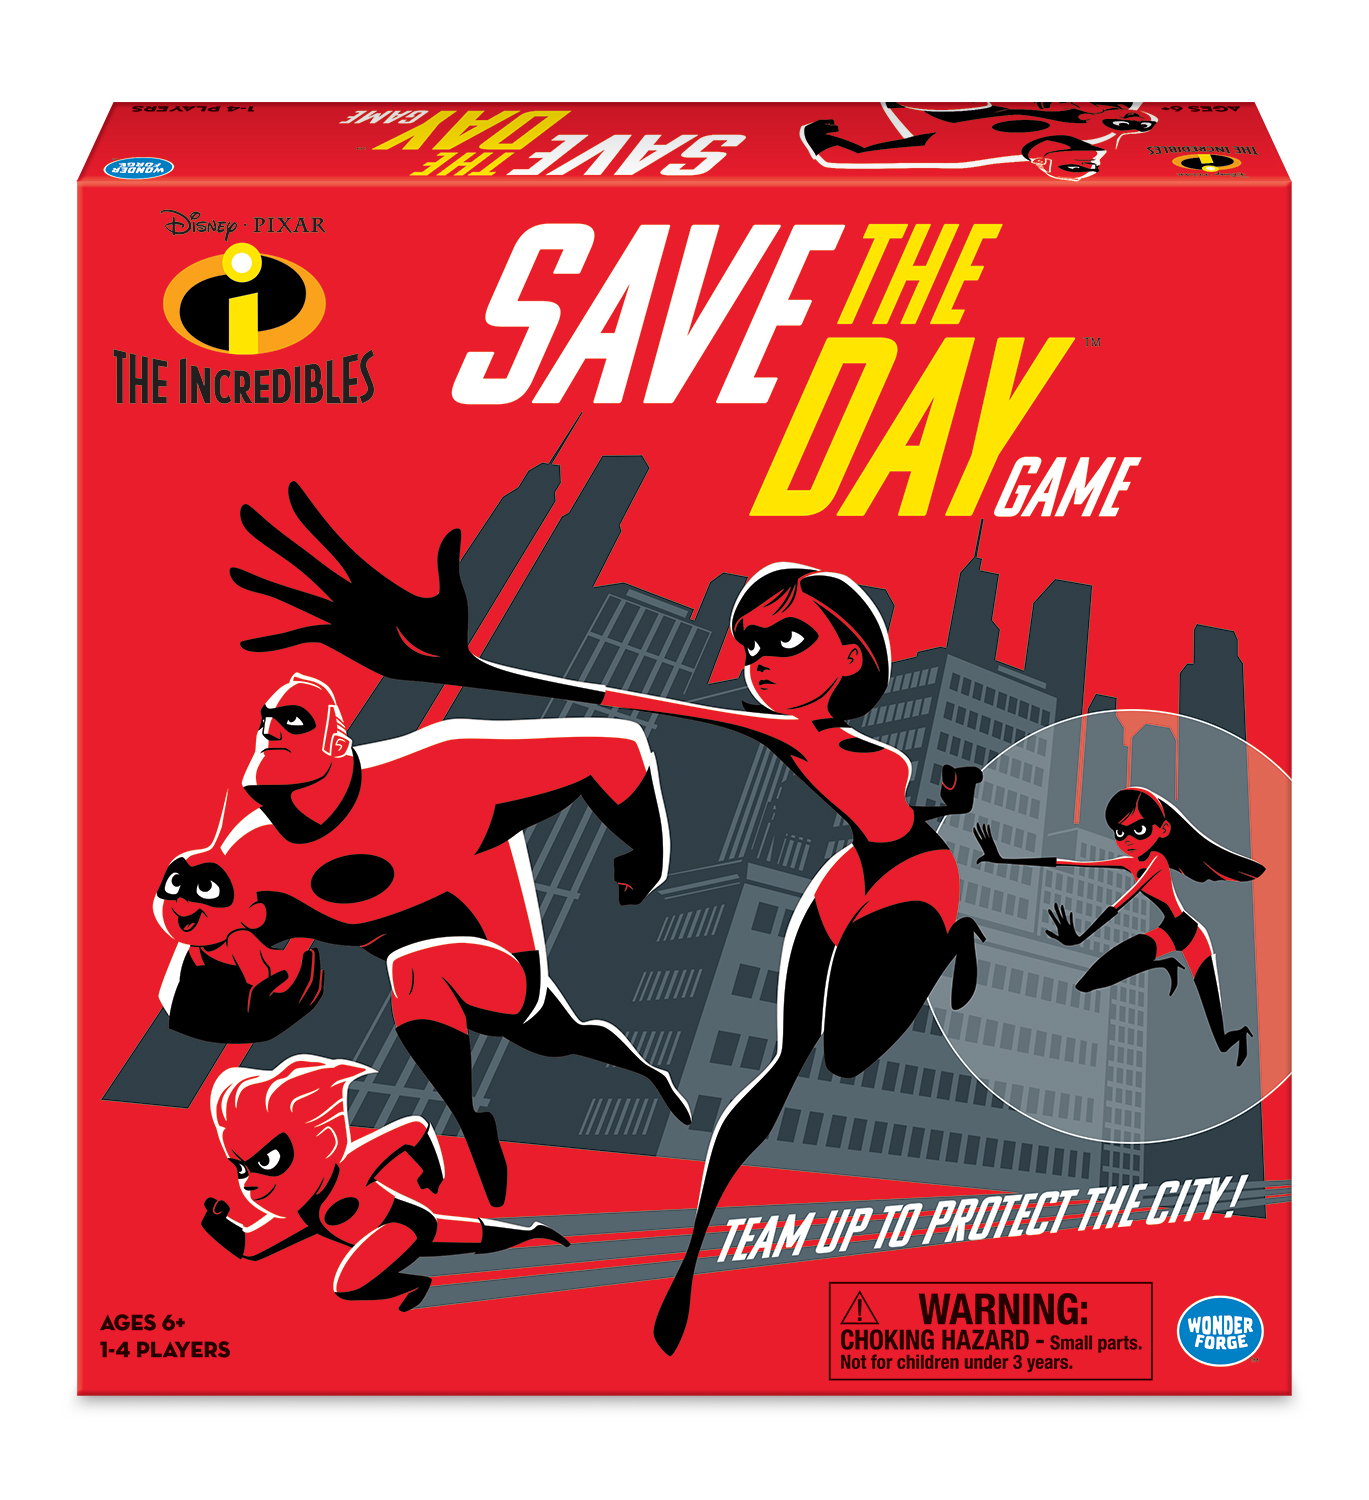 """Wonder forge Games - Wonder Forge has a group of awesome new games out. Your kids will love playing these games. """"The Incredibles Save the Day Game"""" is a fun game you can play with the whole family. Each player has special powers (just like the movie), and you can use teamwork and problem solving skills to help save the day. Feel like playing the evil villain? """"Villainous"""" turns you into one of six Disney Villains, where """"being the bad guy is a good thing!"""" """"Ya Blew It!"""" is a fun and fast-paced dice game for the whole family. For the older teens on your list, check out """"YeahNOPE"""". It's a conversational game that allows you to get to know your friends while sharing your experiences. Wonder Forge has lots of great games available. Click each picture for more info!"""